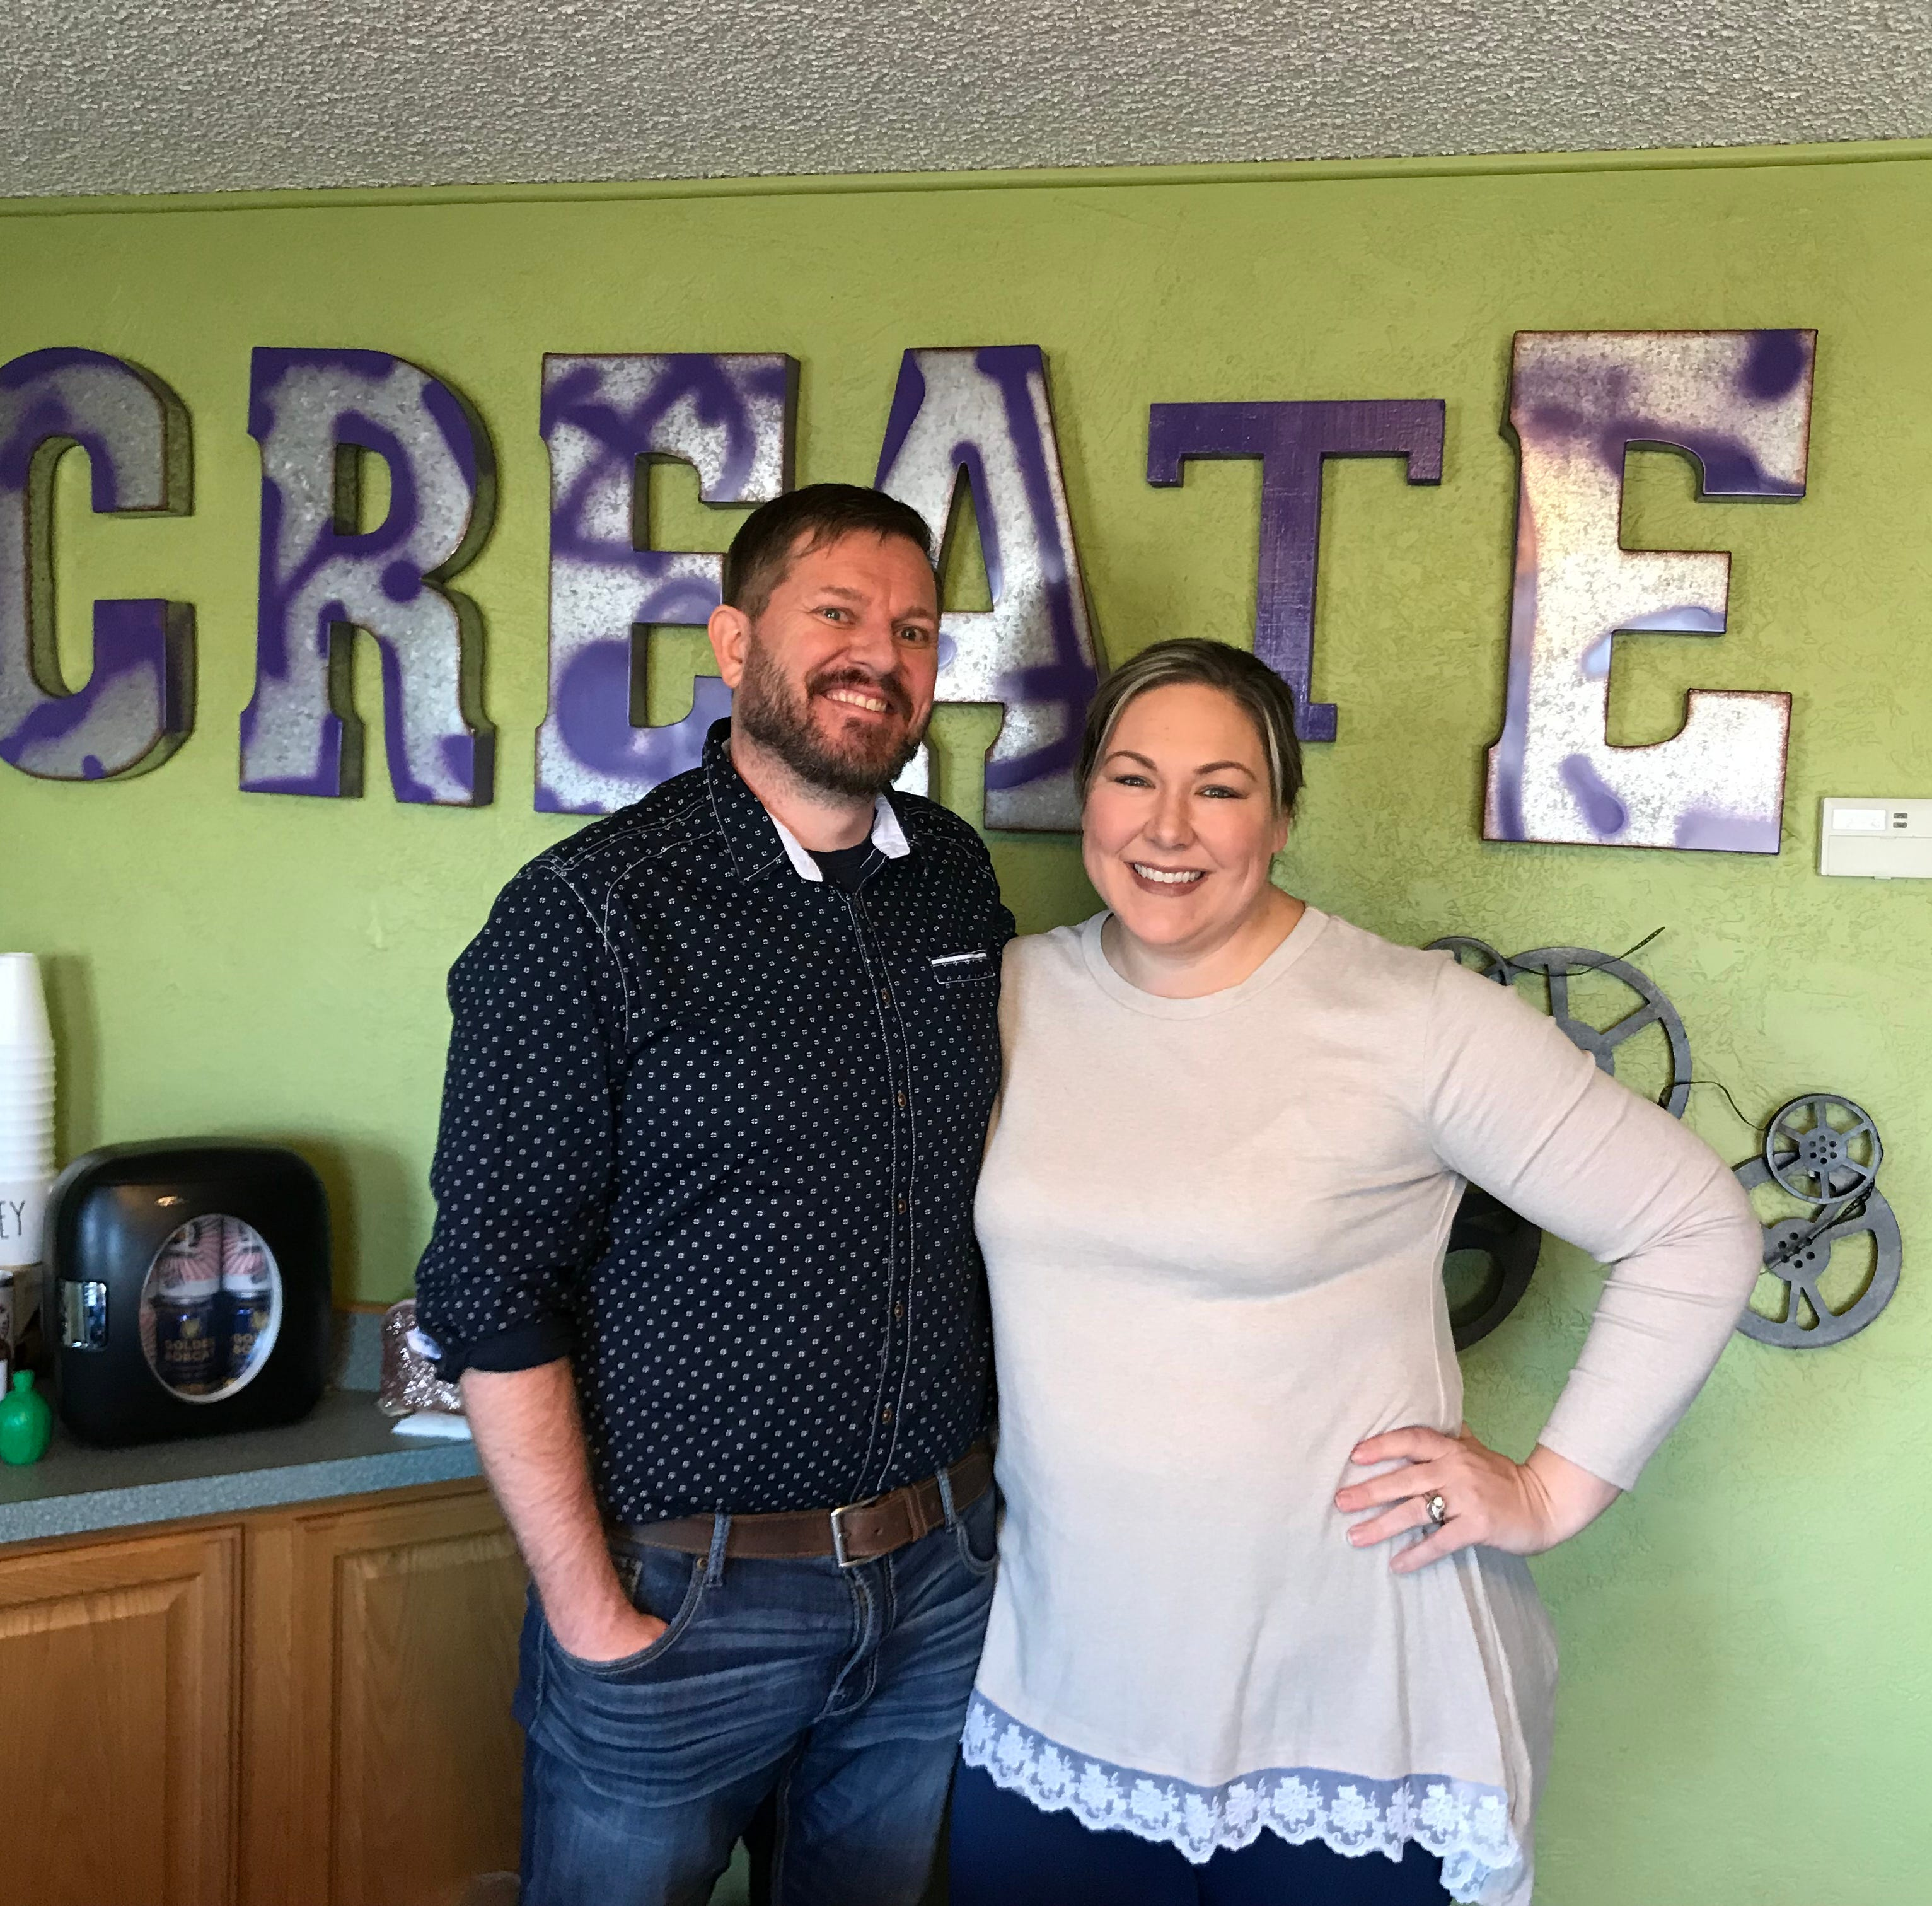 Mansch On Montana: New Great Falls publishing business specializes in hopes and dreams